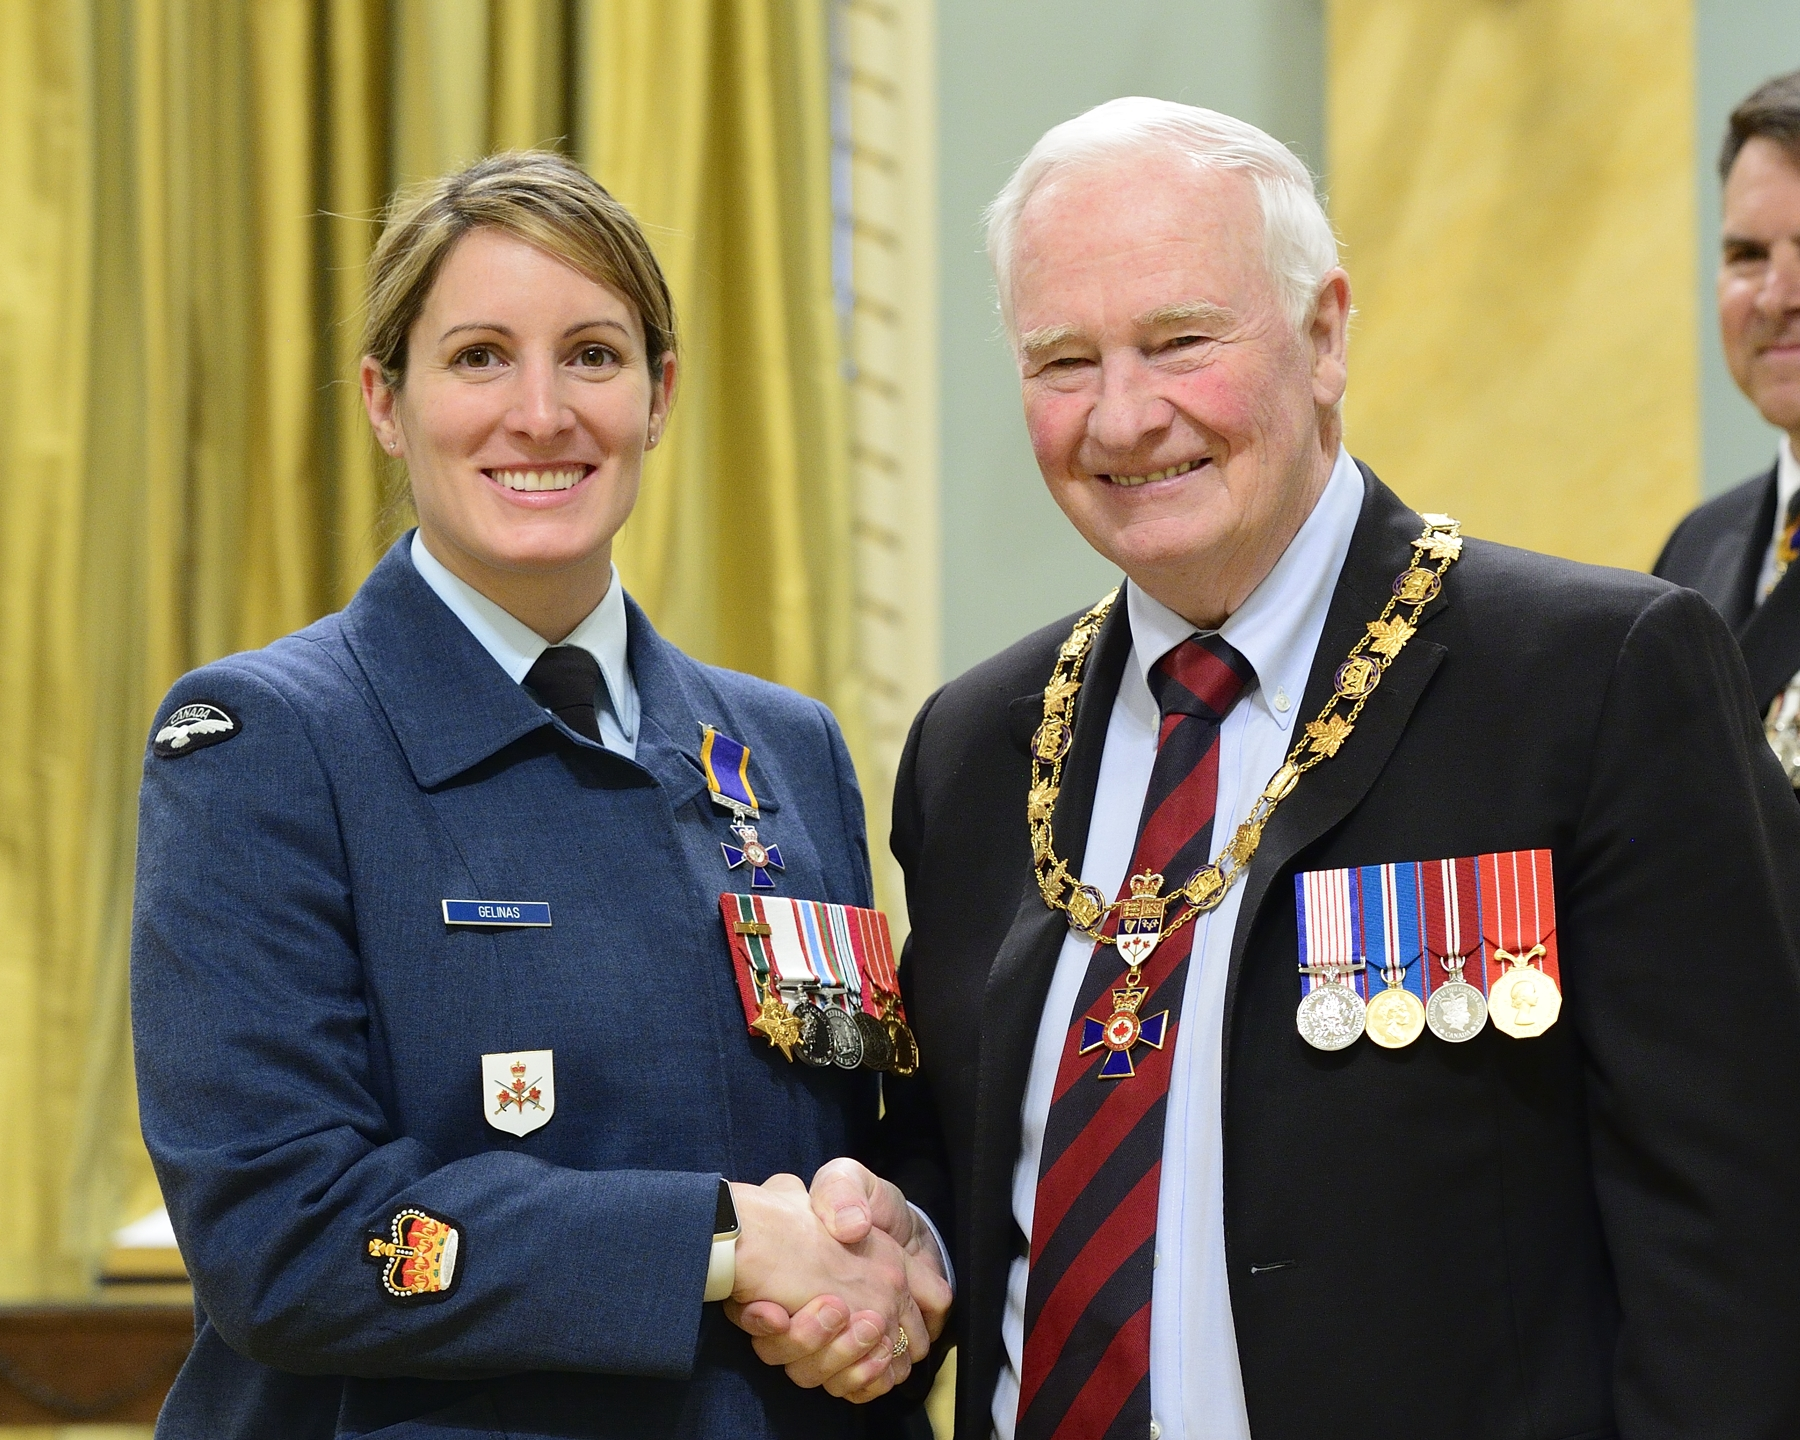 Governor General and Commander-in-Chief of Canada David Johnston presents the Order of Military Merit to Sergeant Kim Marie Marguerite Gélinas, MMM, CD, from 2 Canadian Division Support Group Personnel Services, Courcelette, Quebec. PHOTO: Sergeant Johanie Mahieu, Rideau Hall ©, GG05-2017-0075-043-gelinas